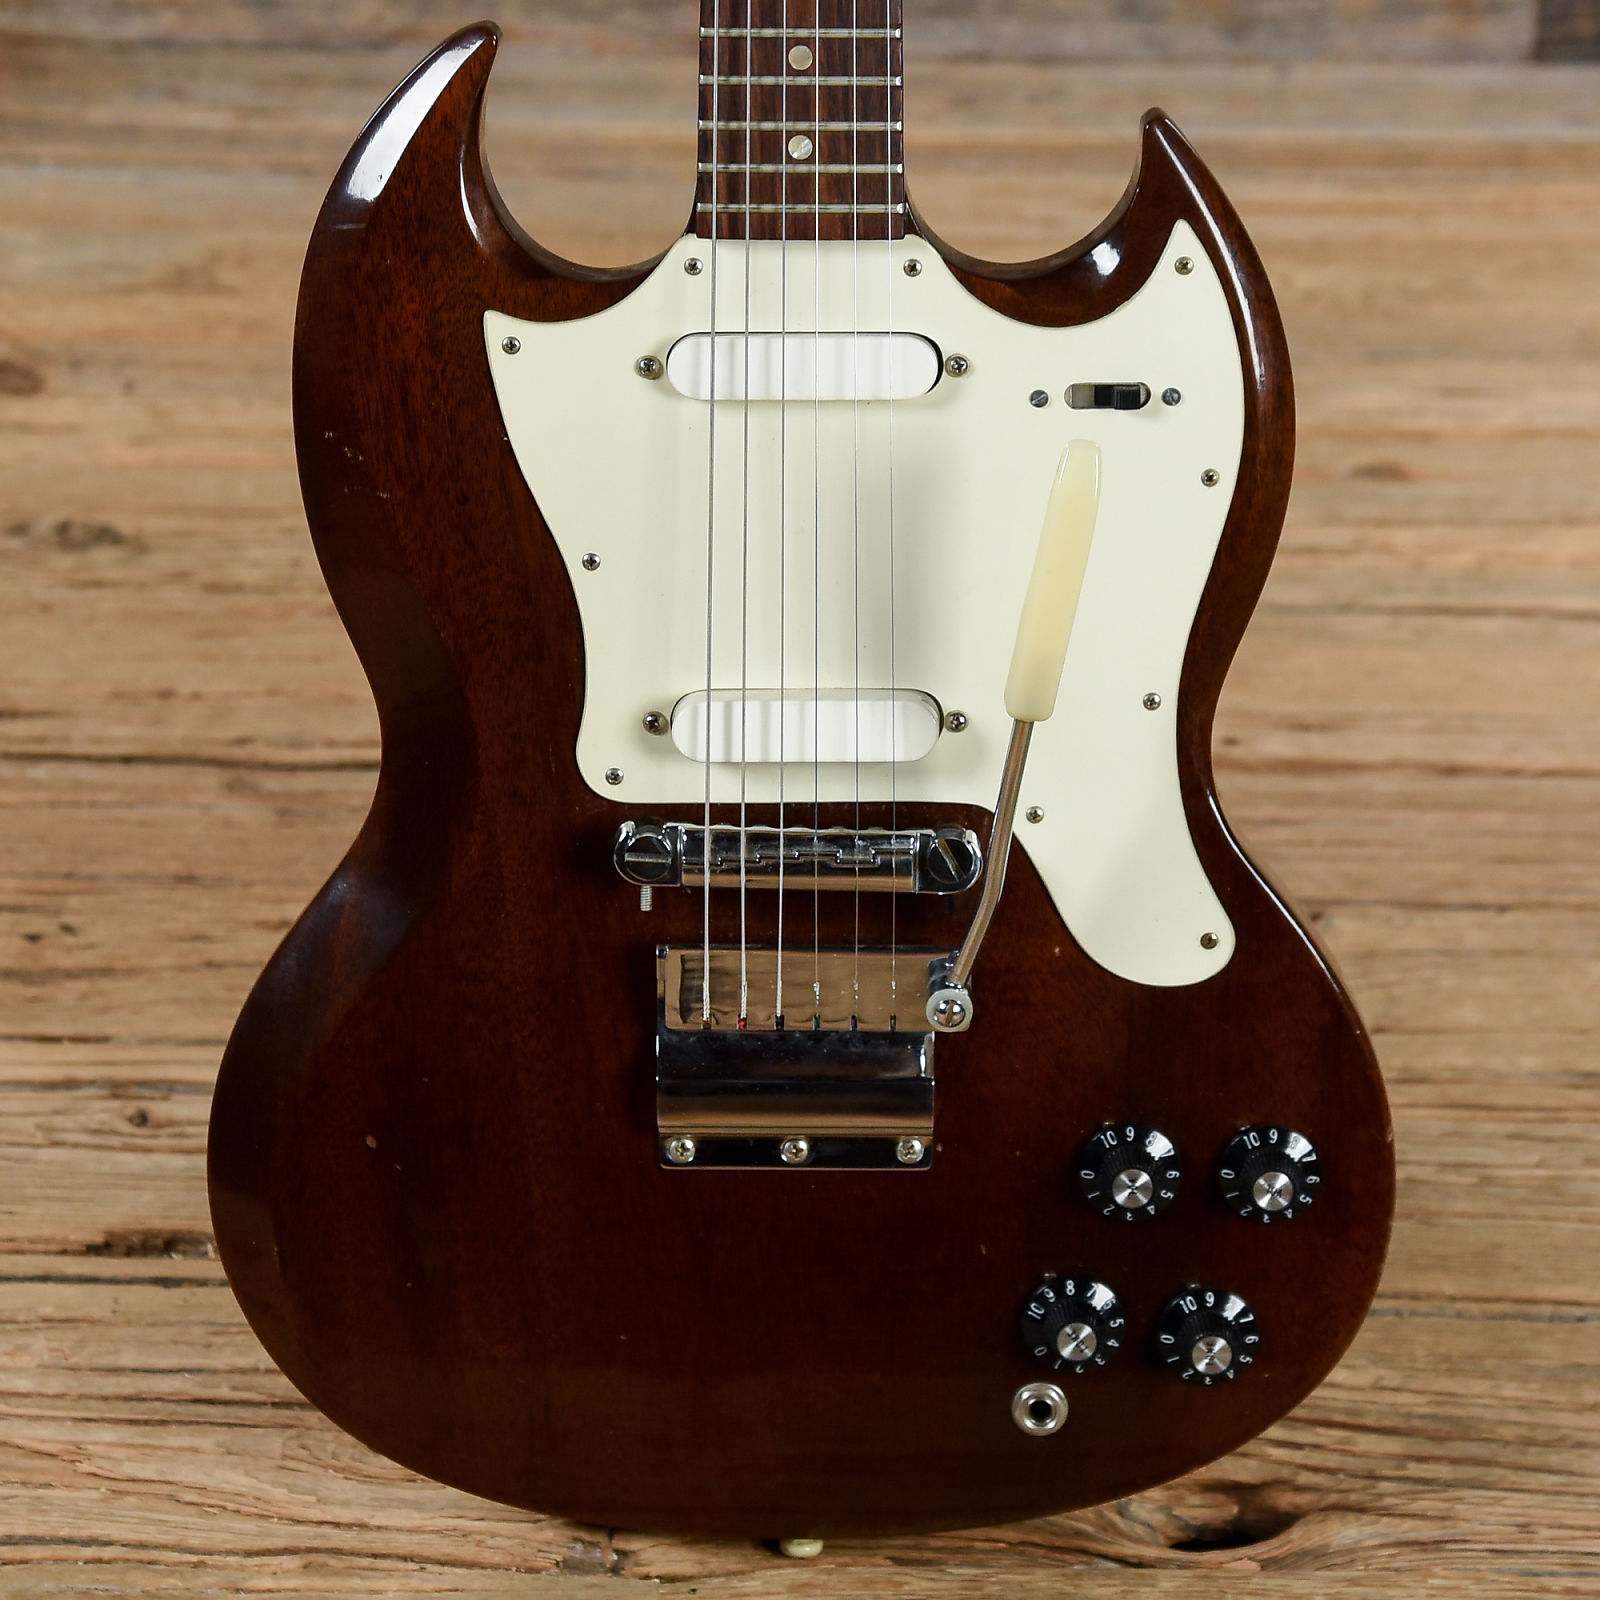 Gibson Melody Maker D Brown 1968 (s153)